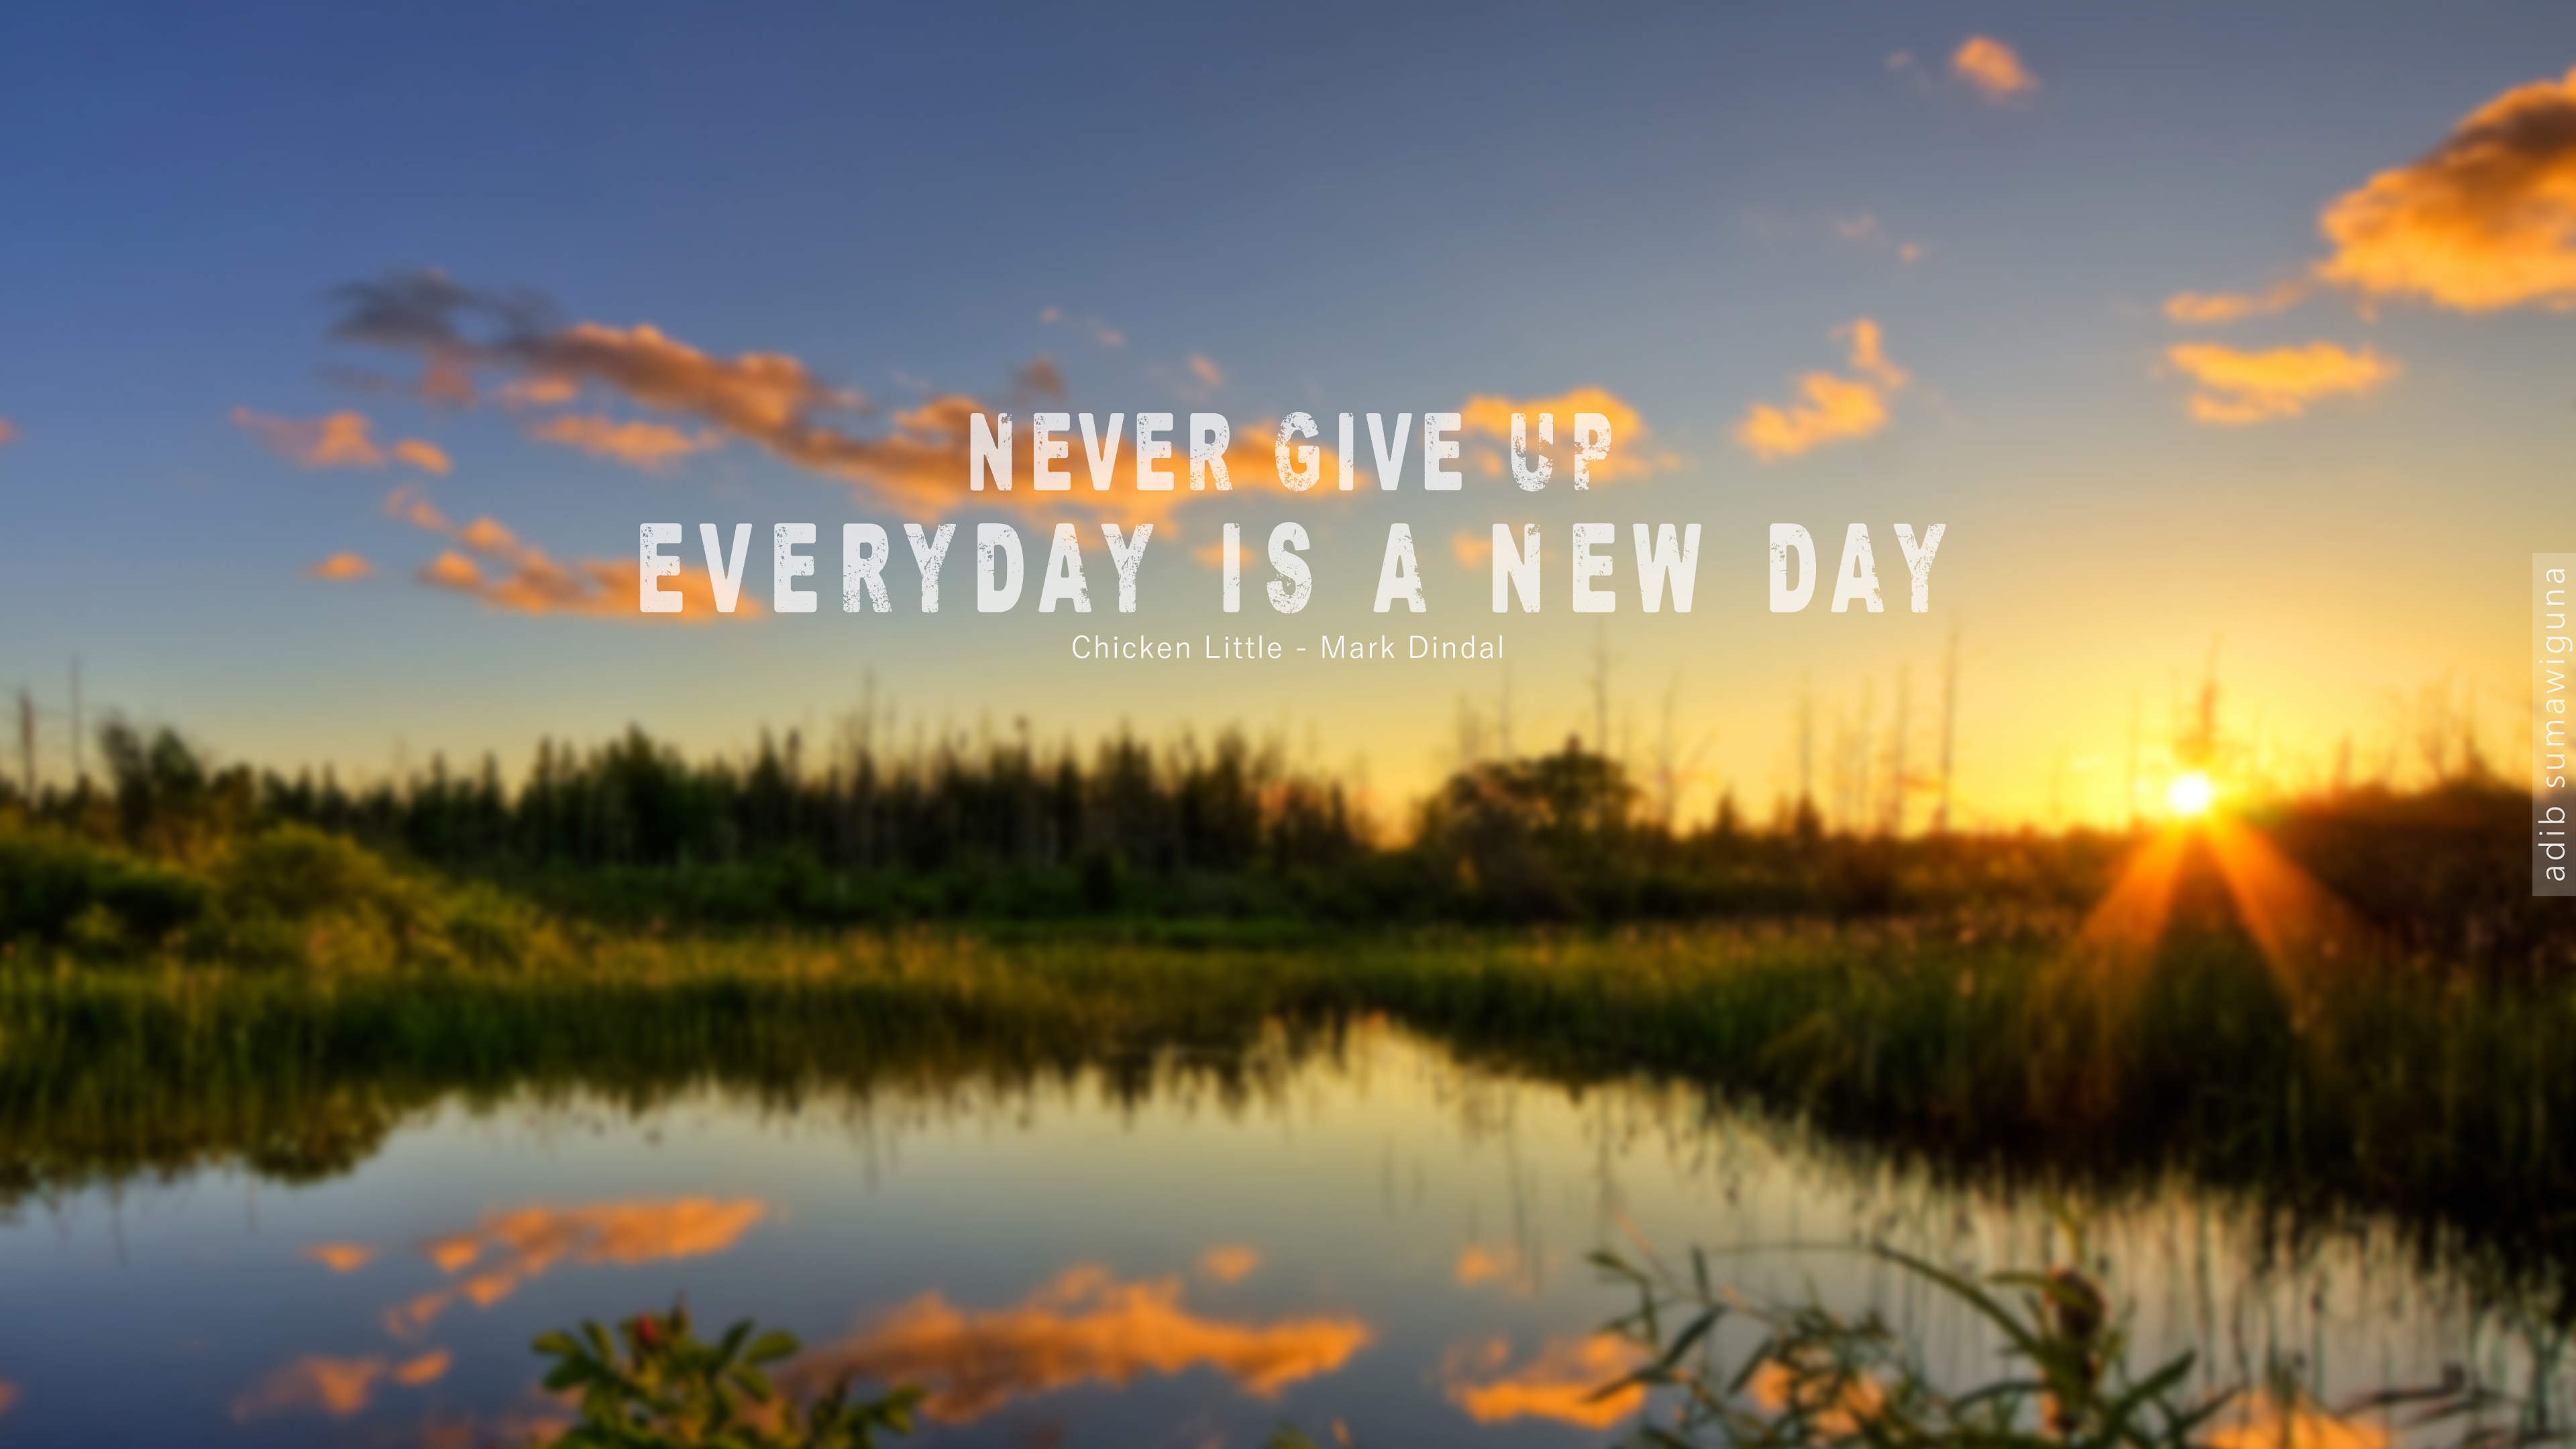 Never Give Up Hd Wallpaper By Adib 27 On Deviantart